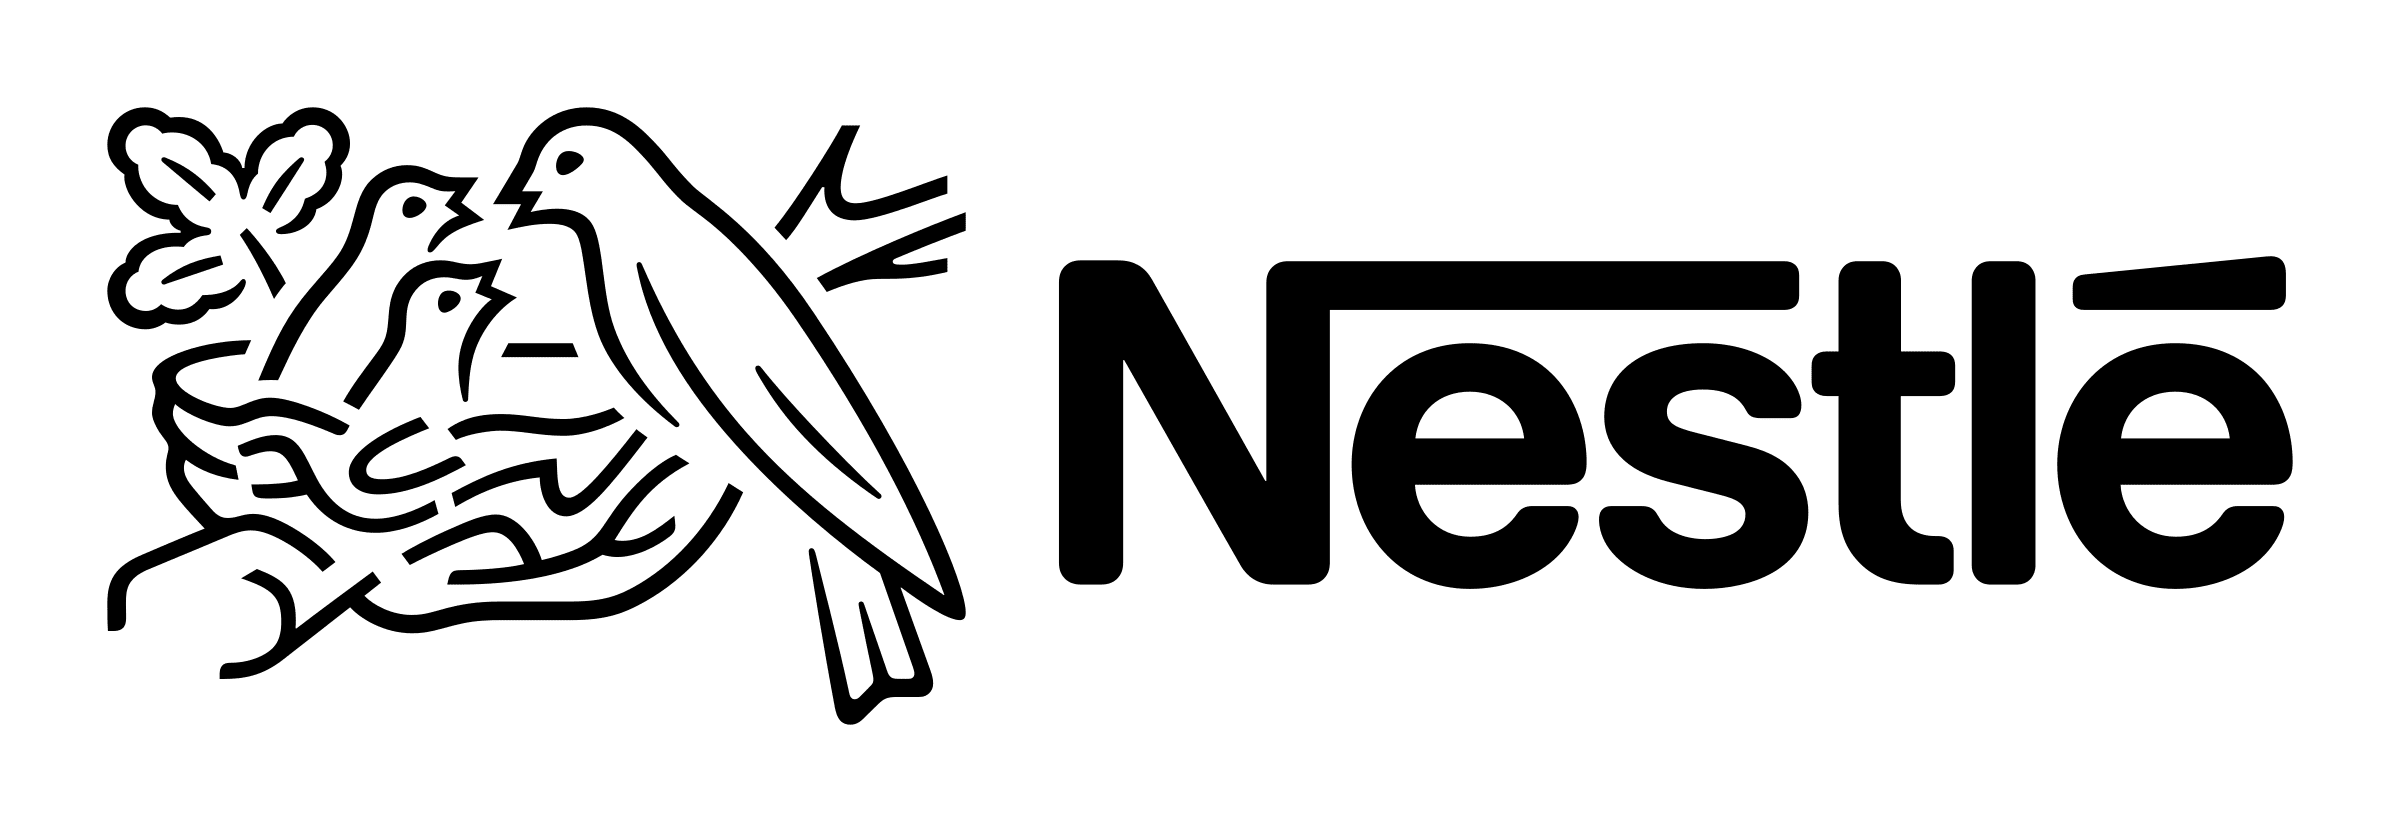 nestle-logo-black-and-white